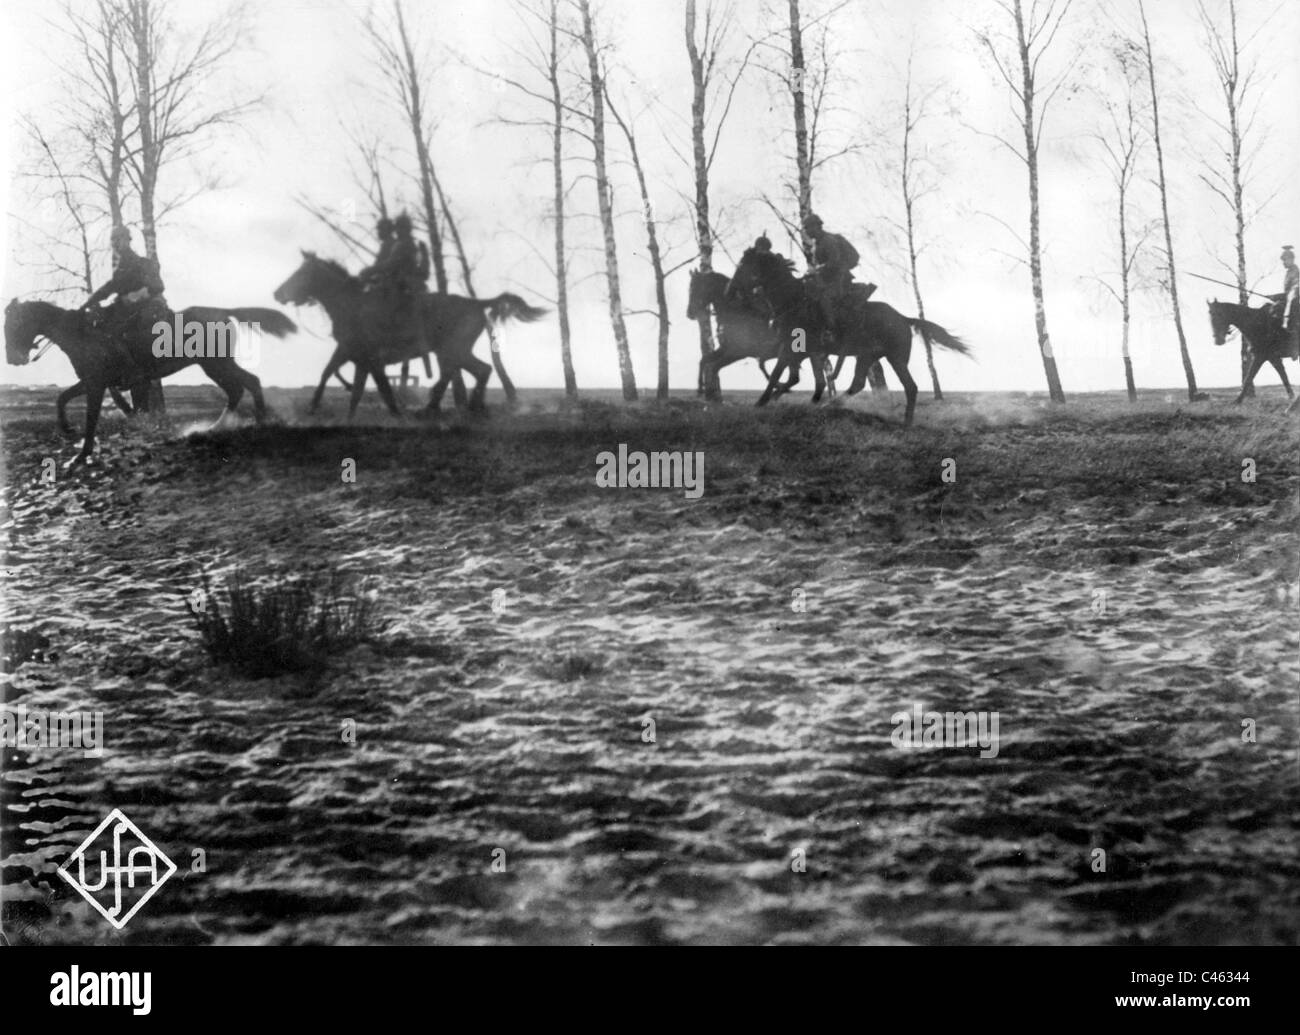 German cavalry in the battle of Tannenberg, 1914 - Stock Image